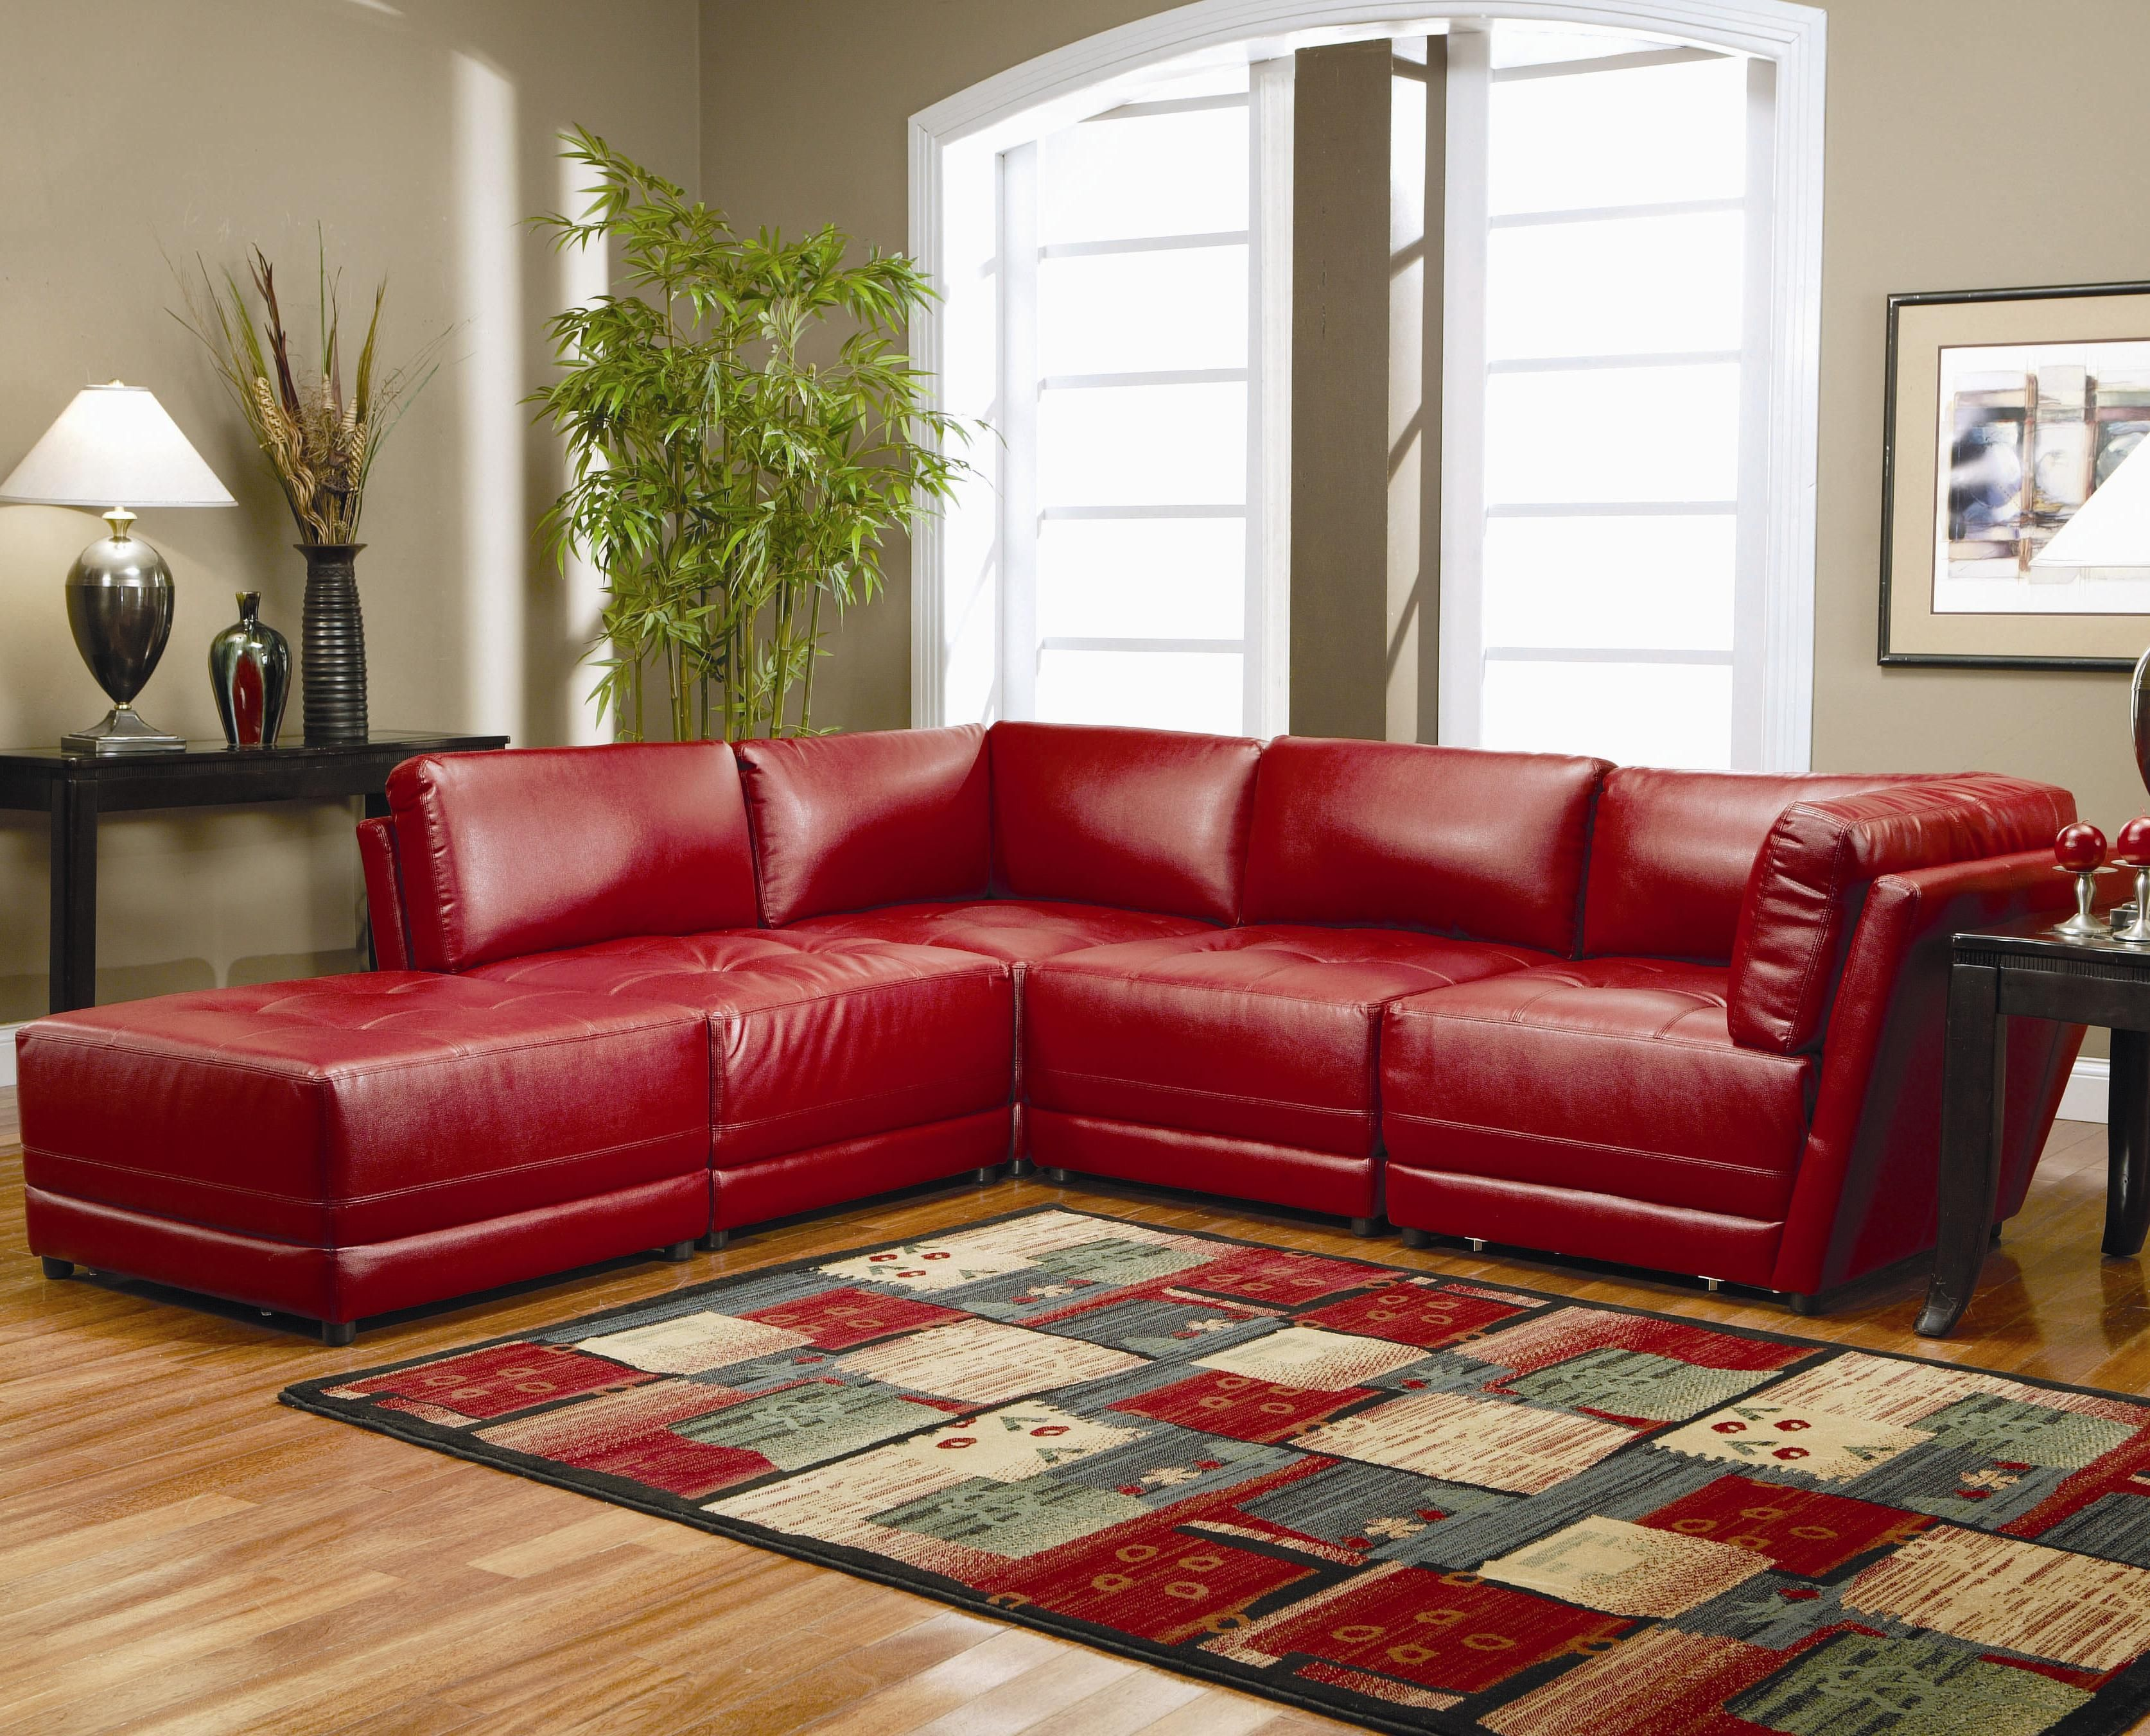 Sofa Ideas For Small Living Rooms